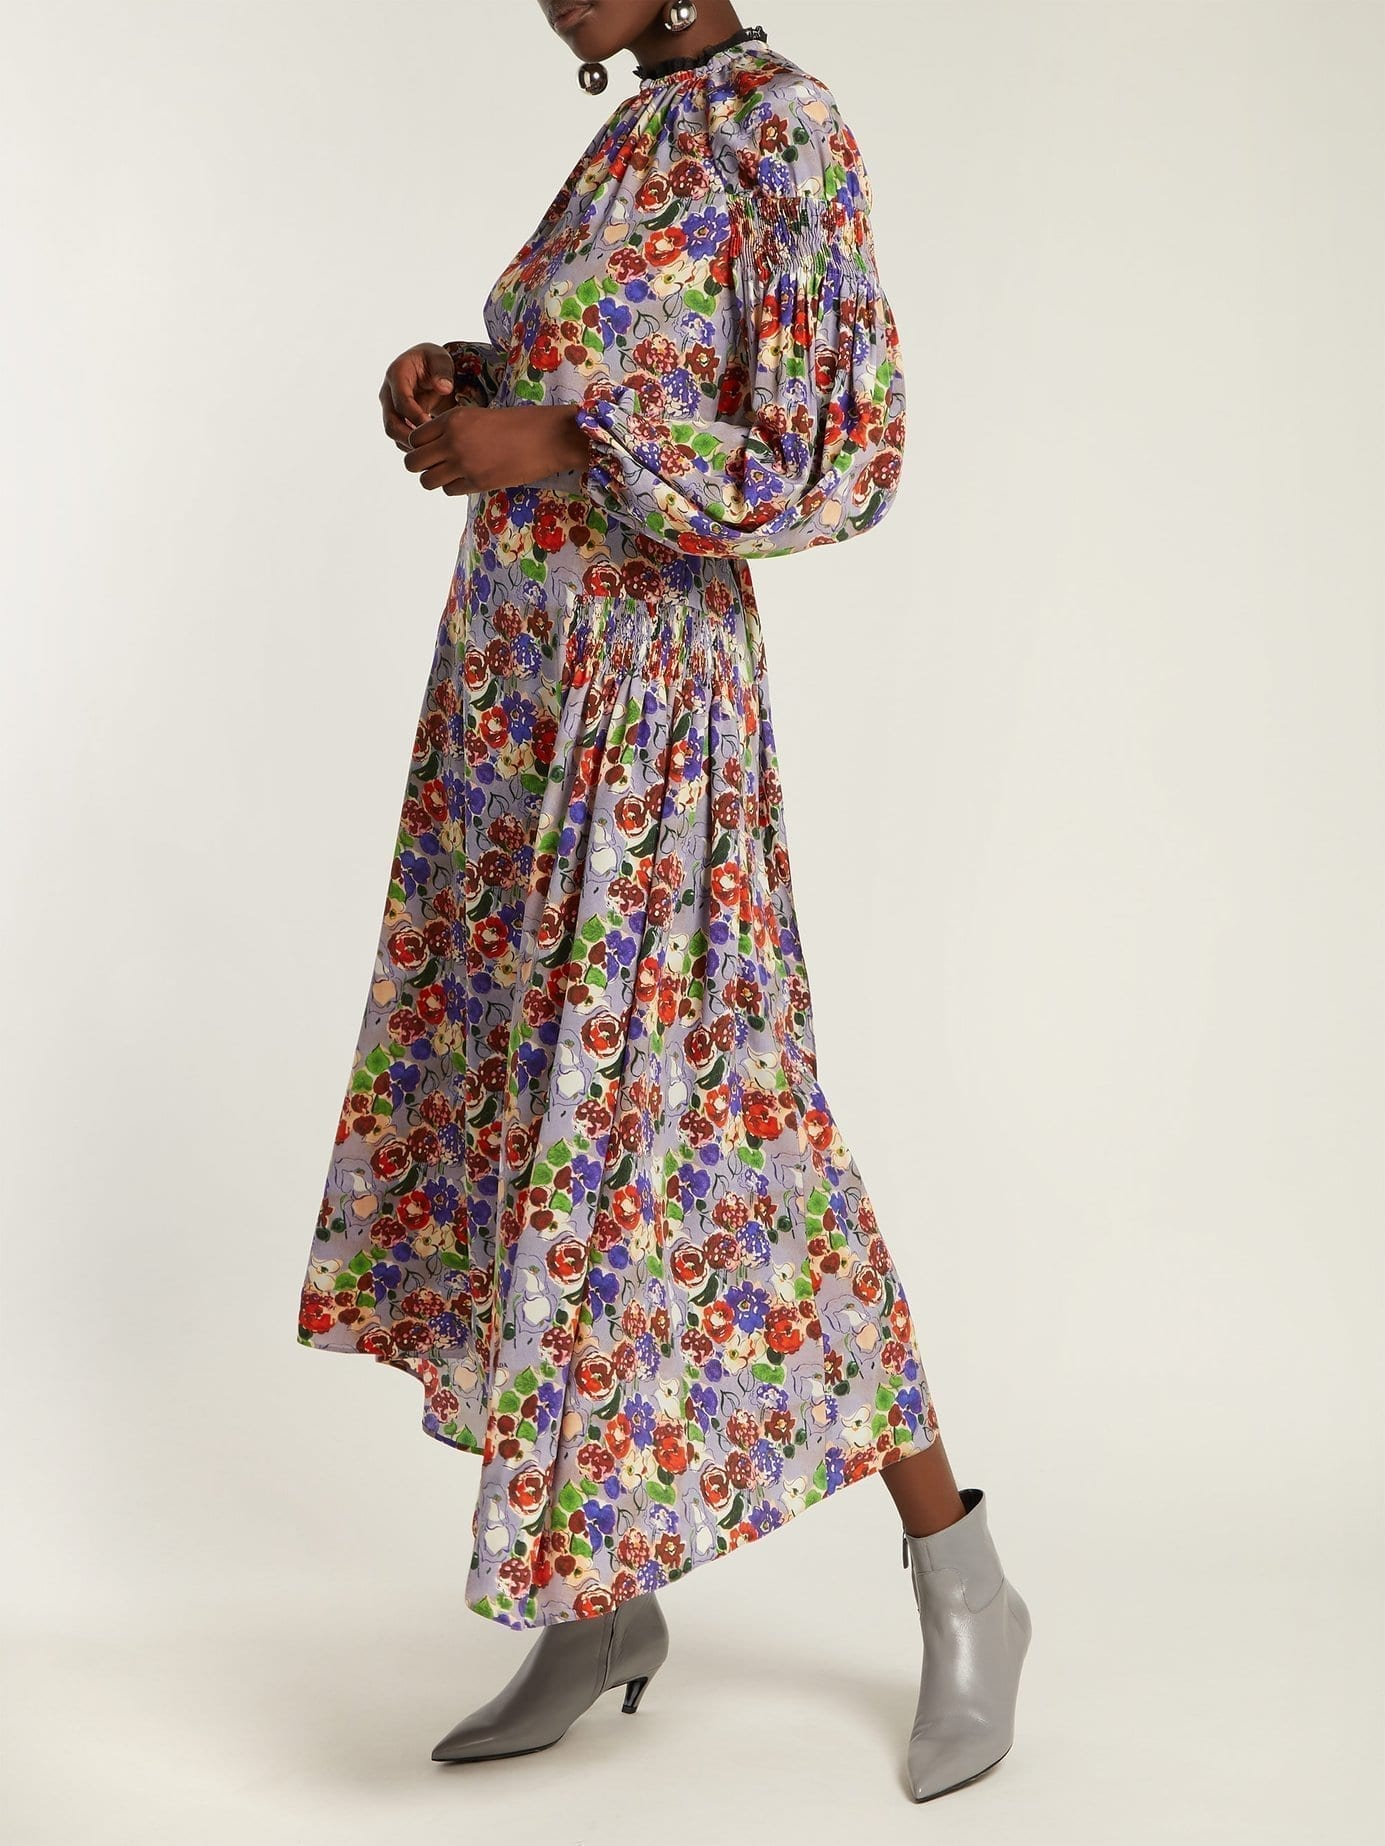 PRADA Morocaine Primrose Silk Multi / Floral Printed Dress